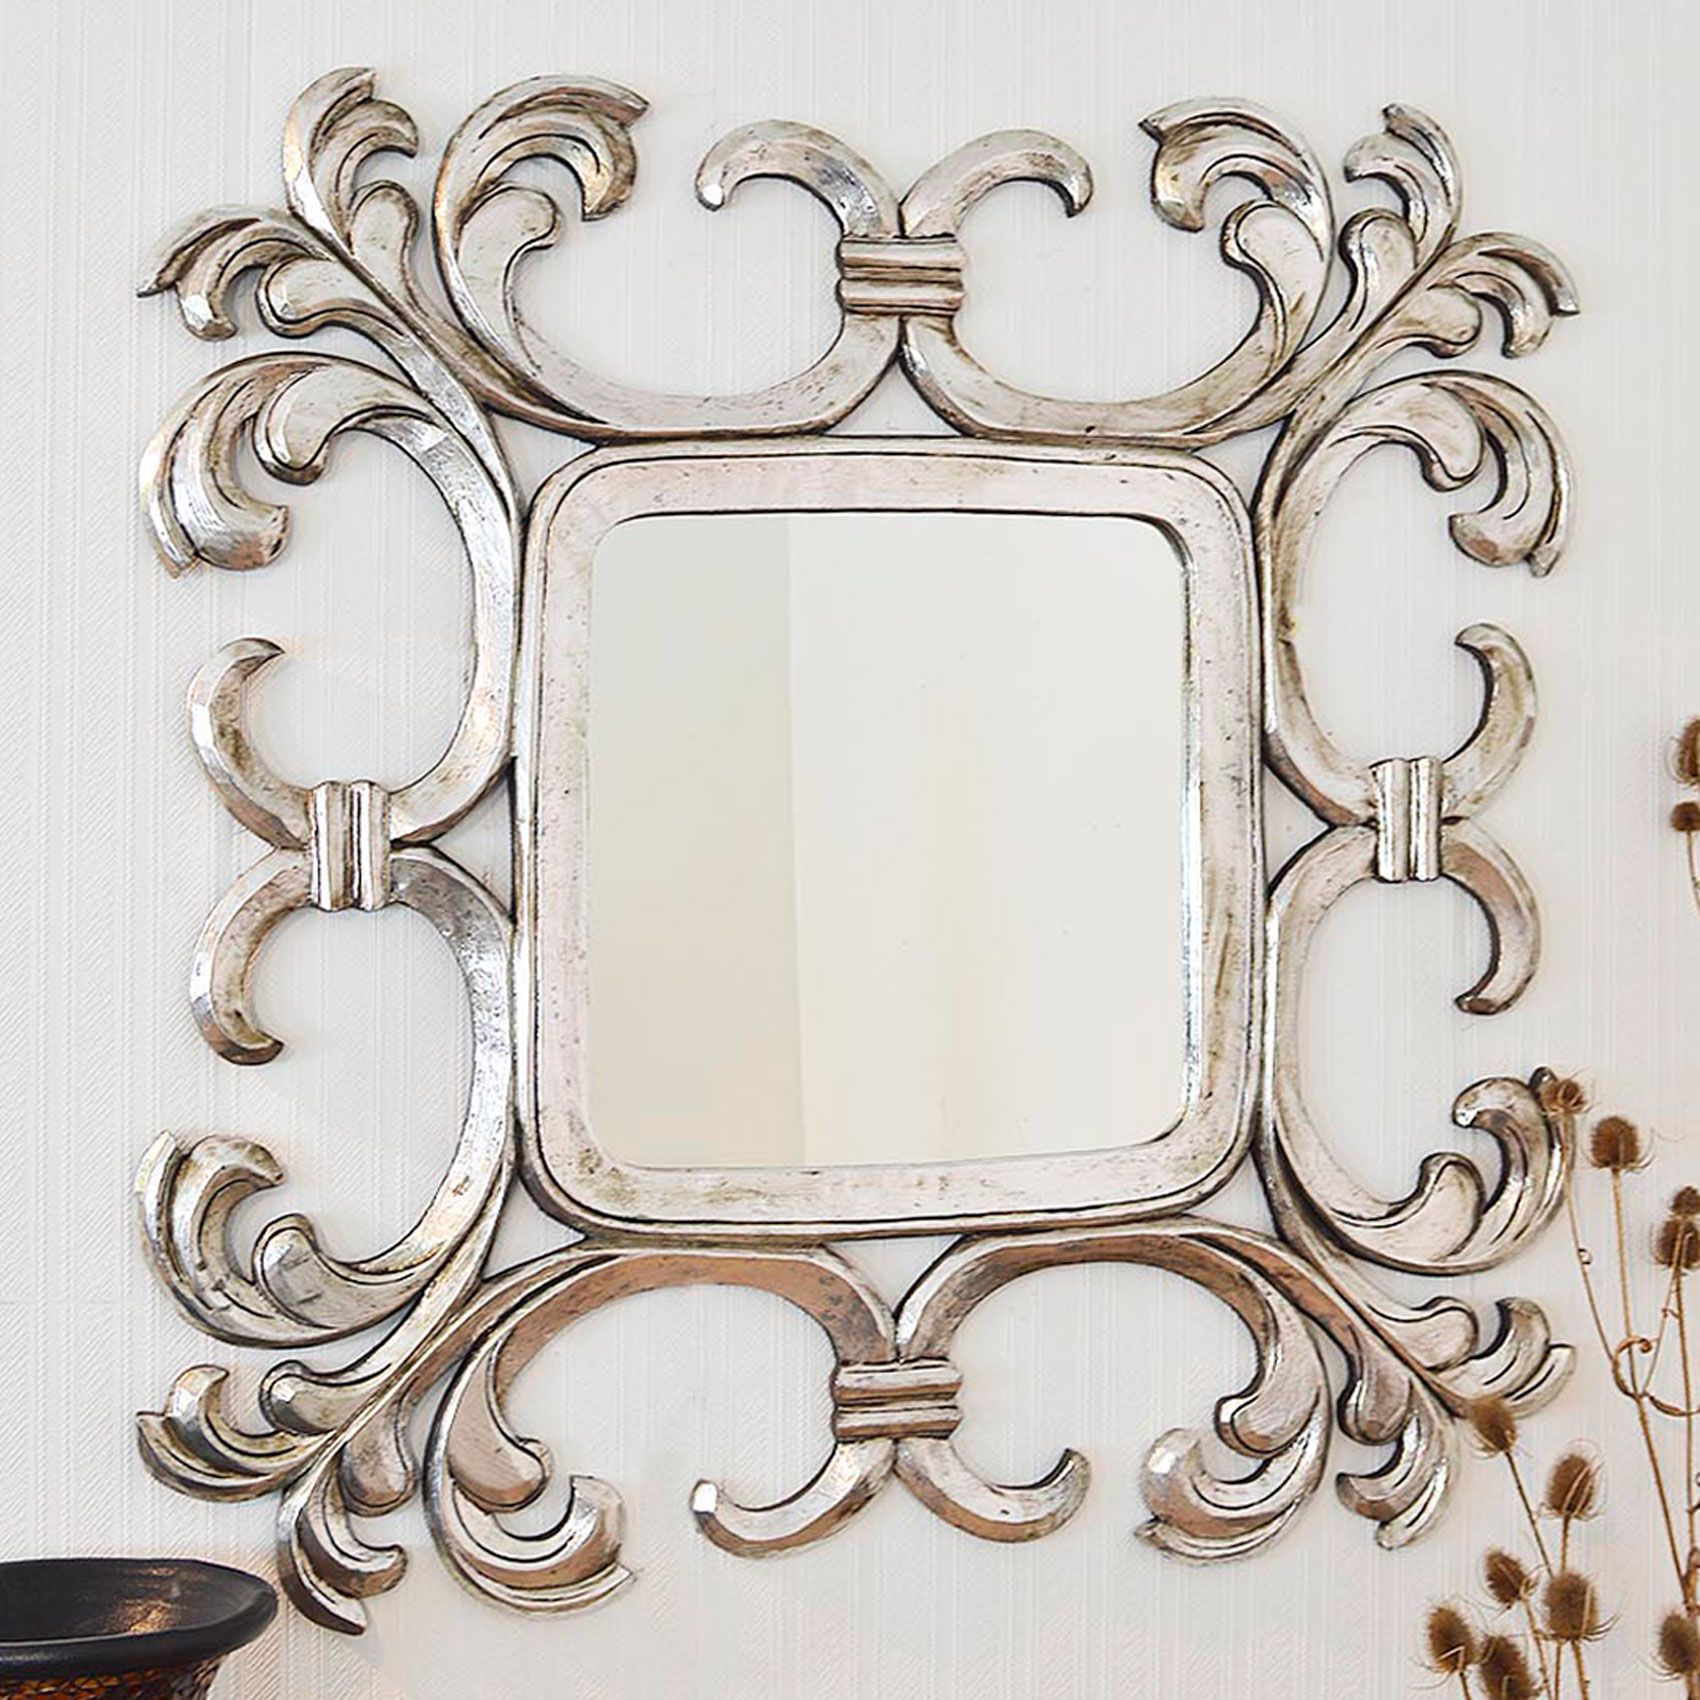 for marvelous styles bedroom inspiration and concept bathroom pict inspiring decorative decoration mirror rustic trend ideas decor of mirrors wall